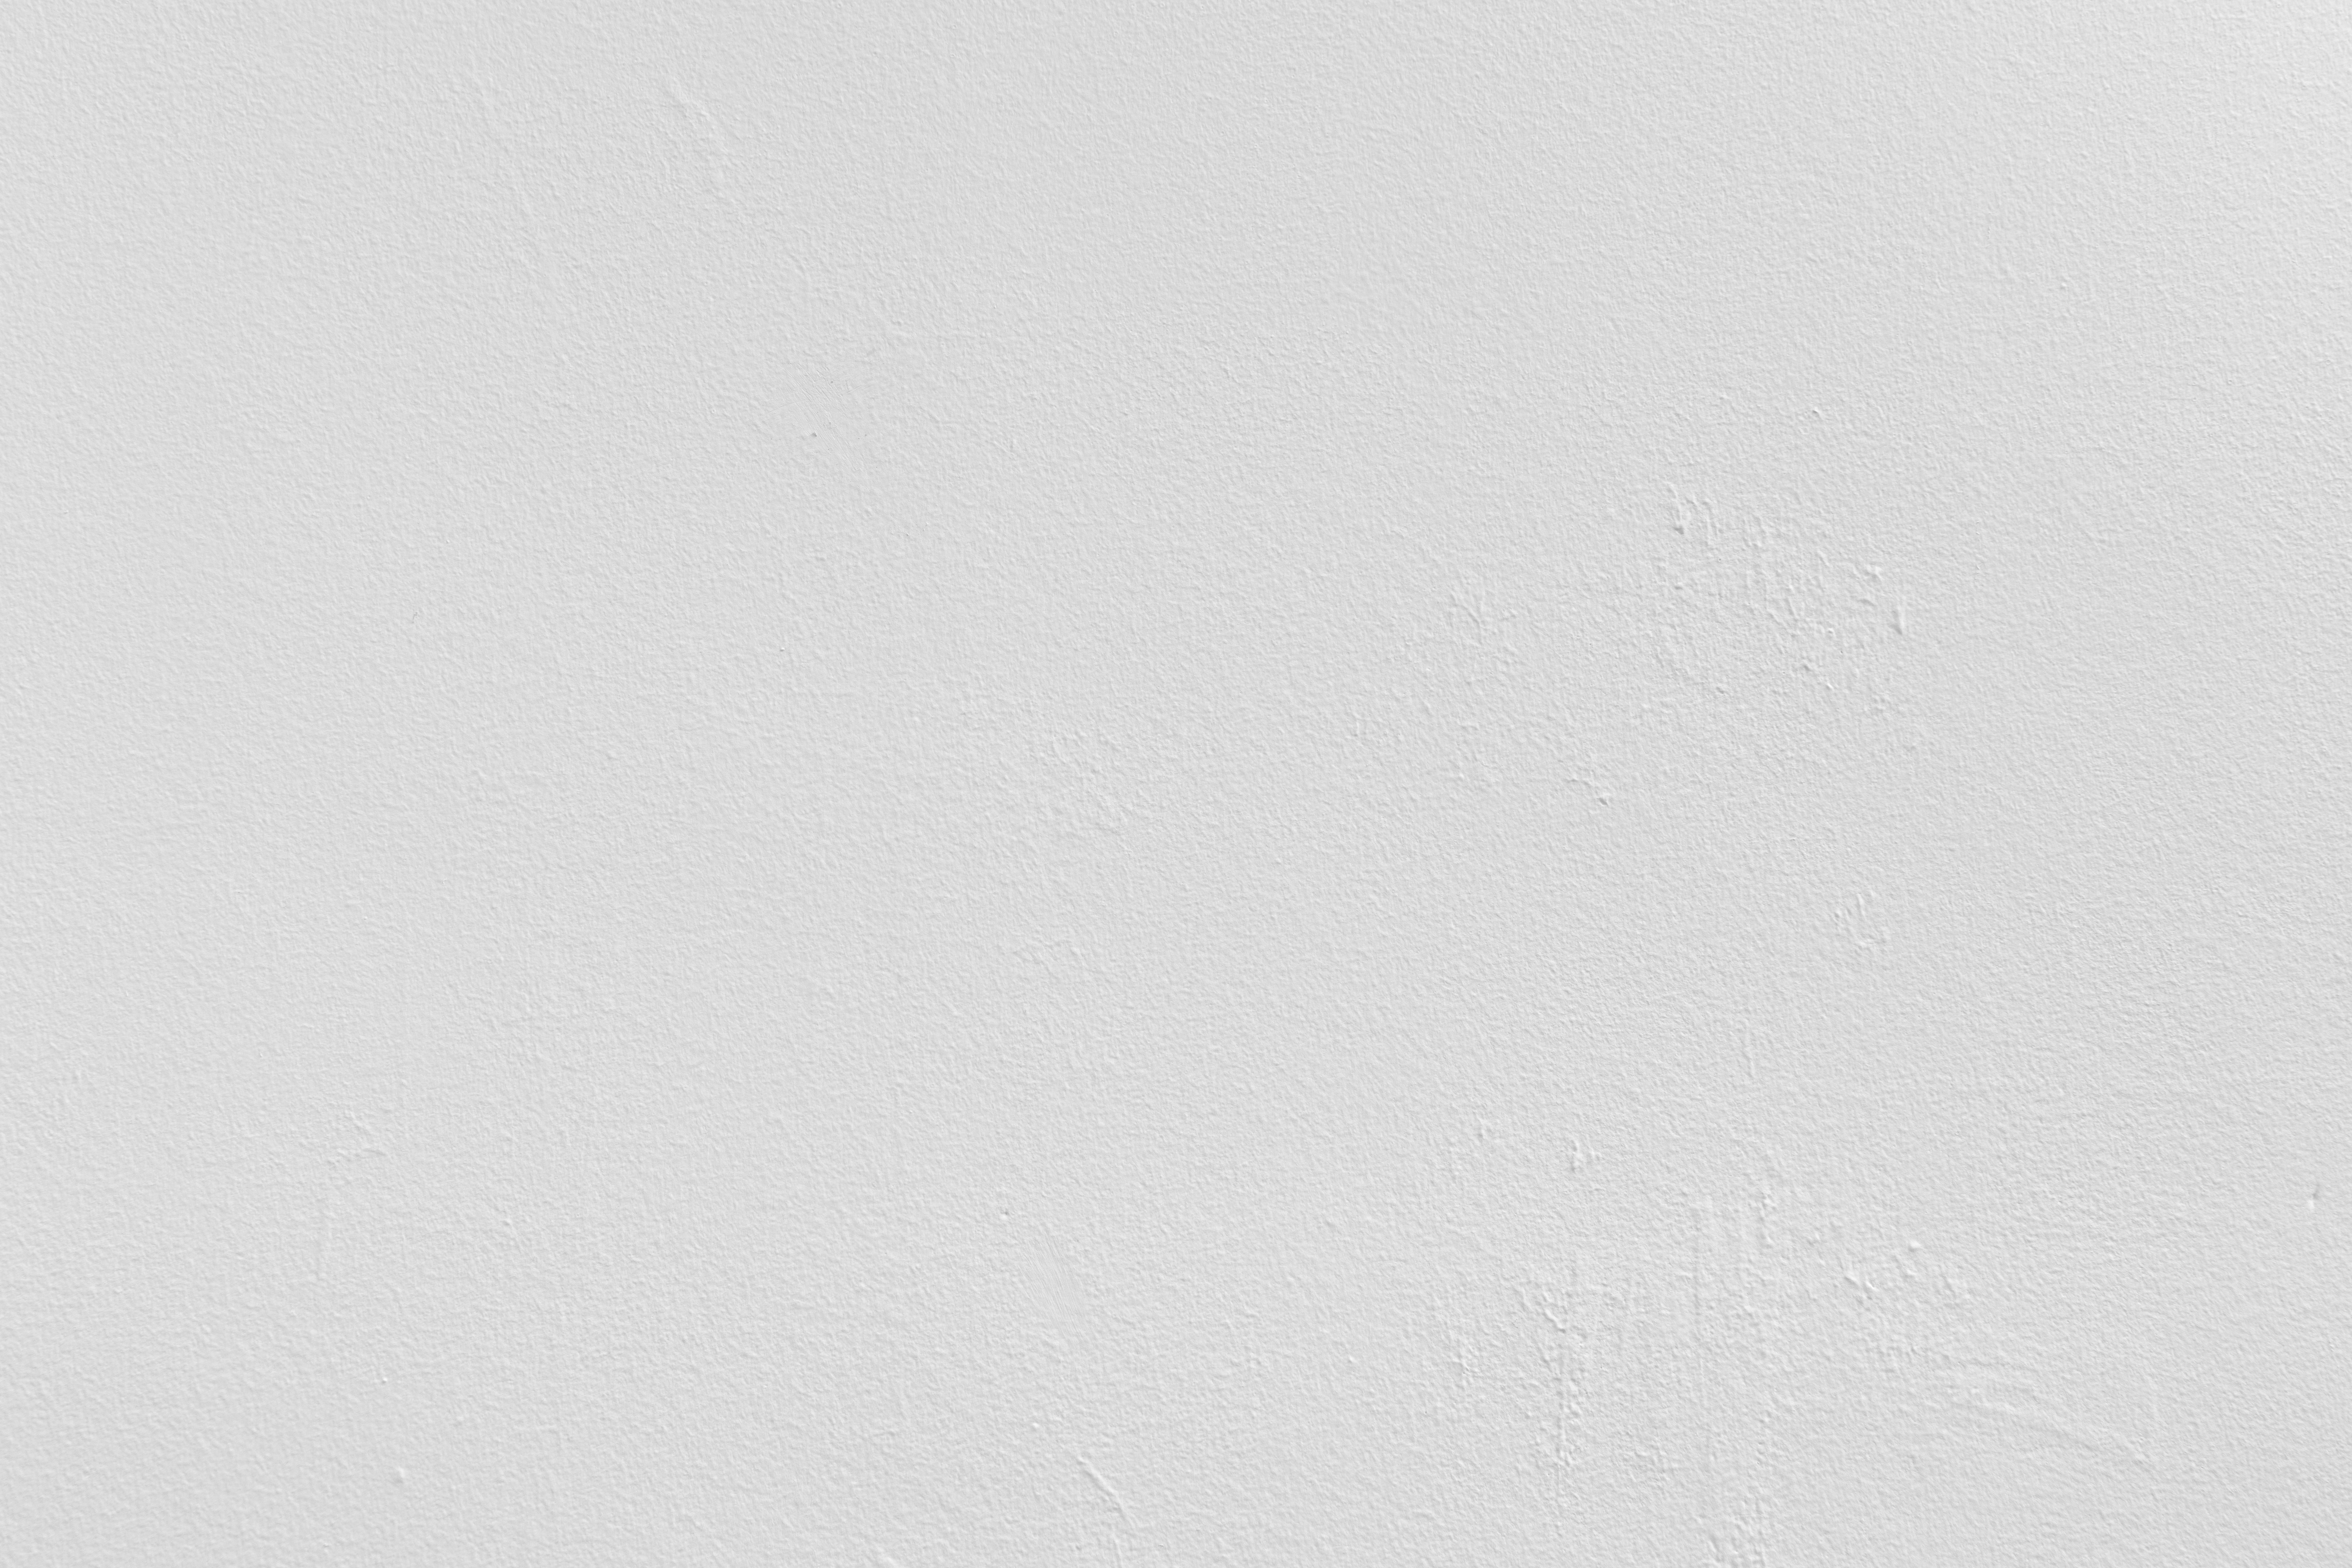 1000+ Beautiful White Wall Photos · Pexels · Free Stock Photos